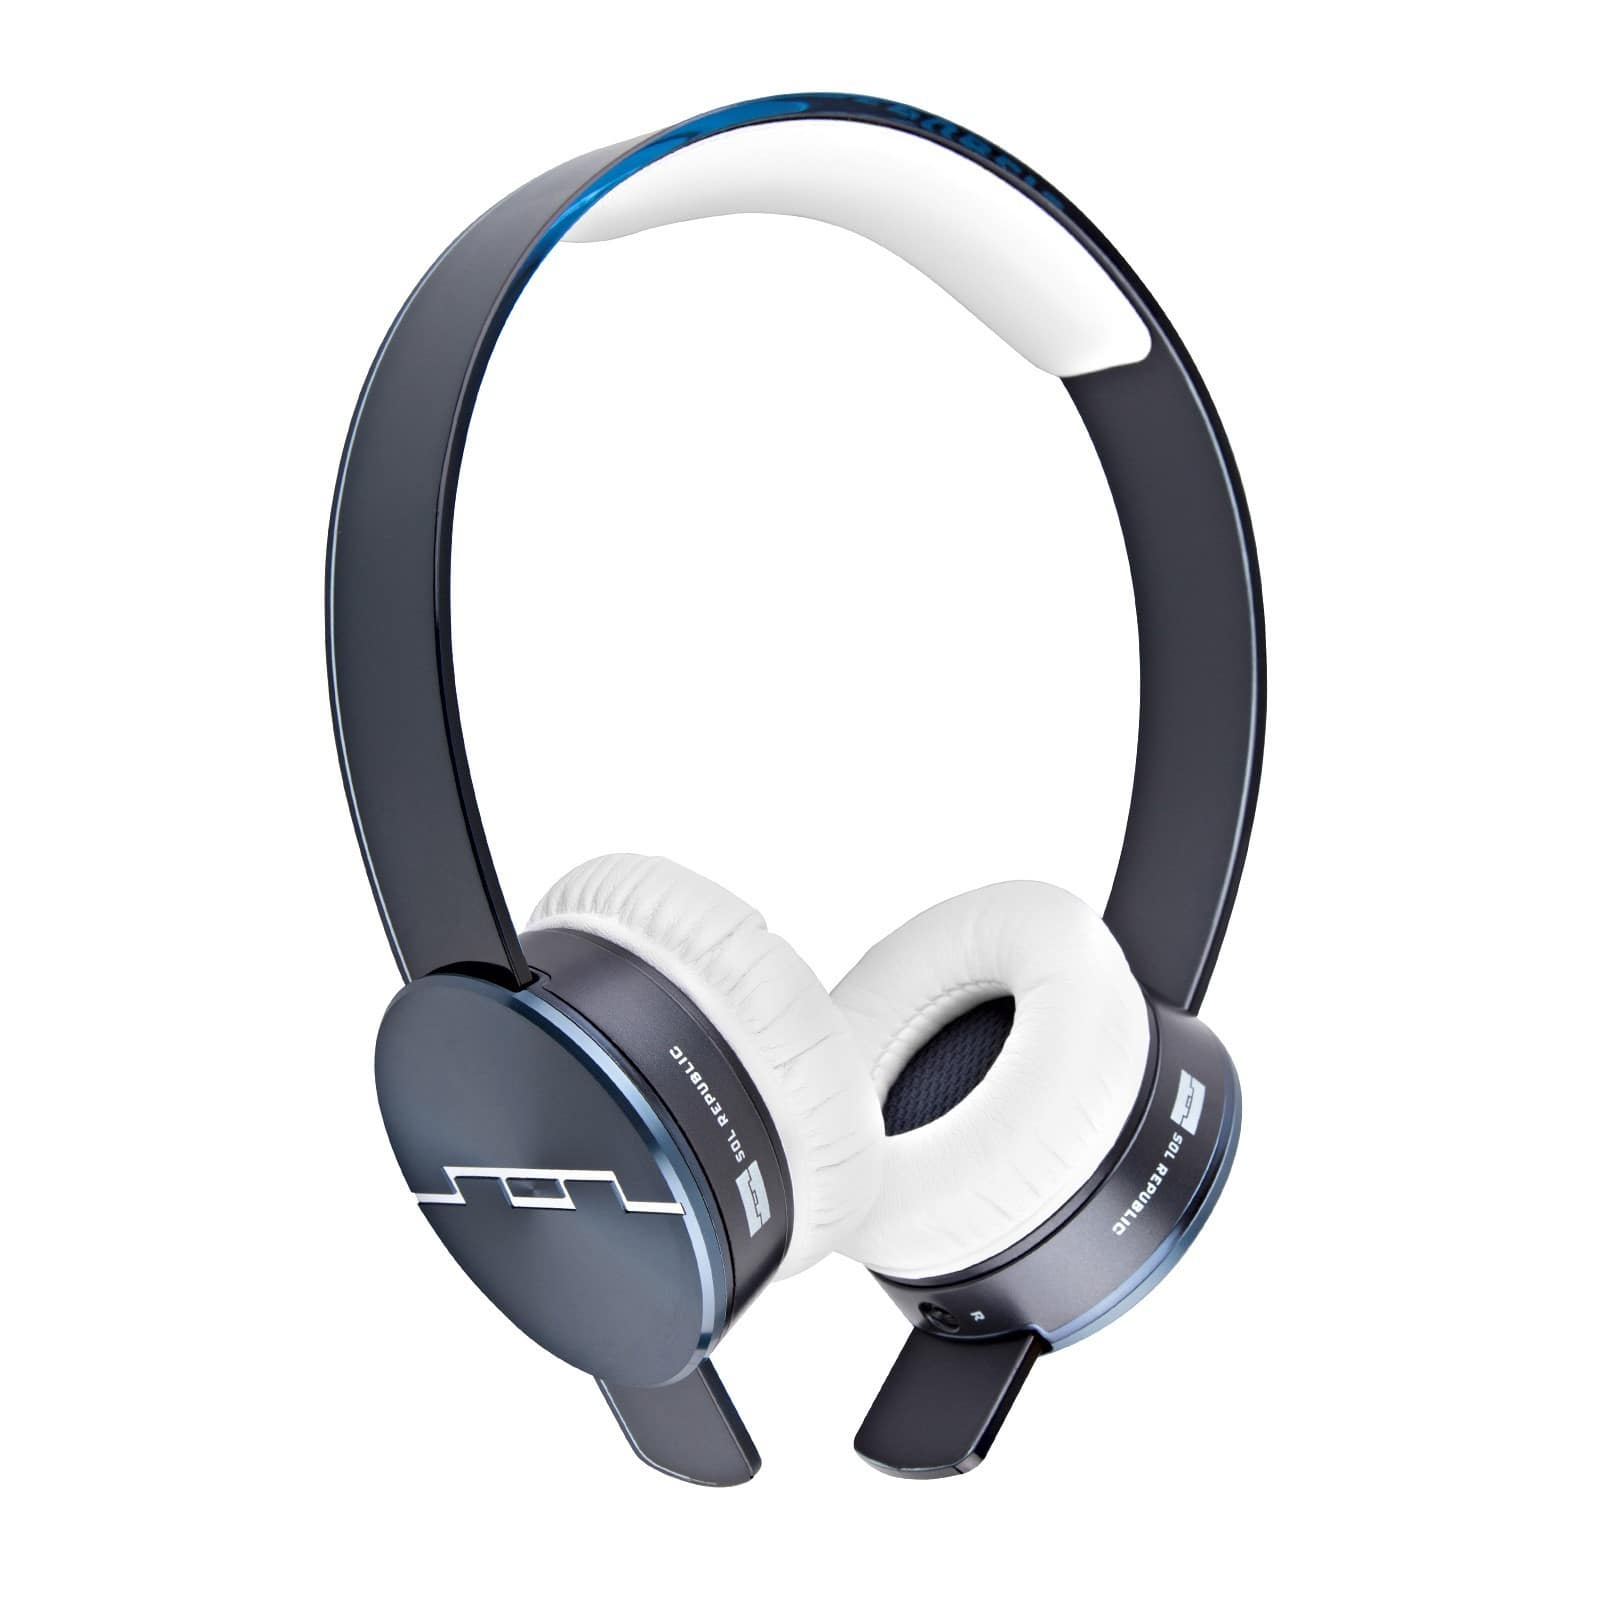 Sol Republic Tracks Ultra On-Ear Headphones with 3 Button Remote (Refurbished) $29.99 + Free Shipping